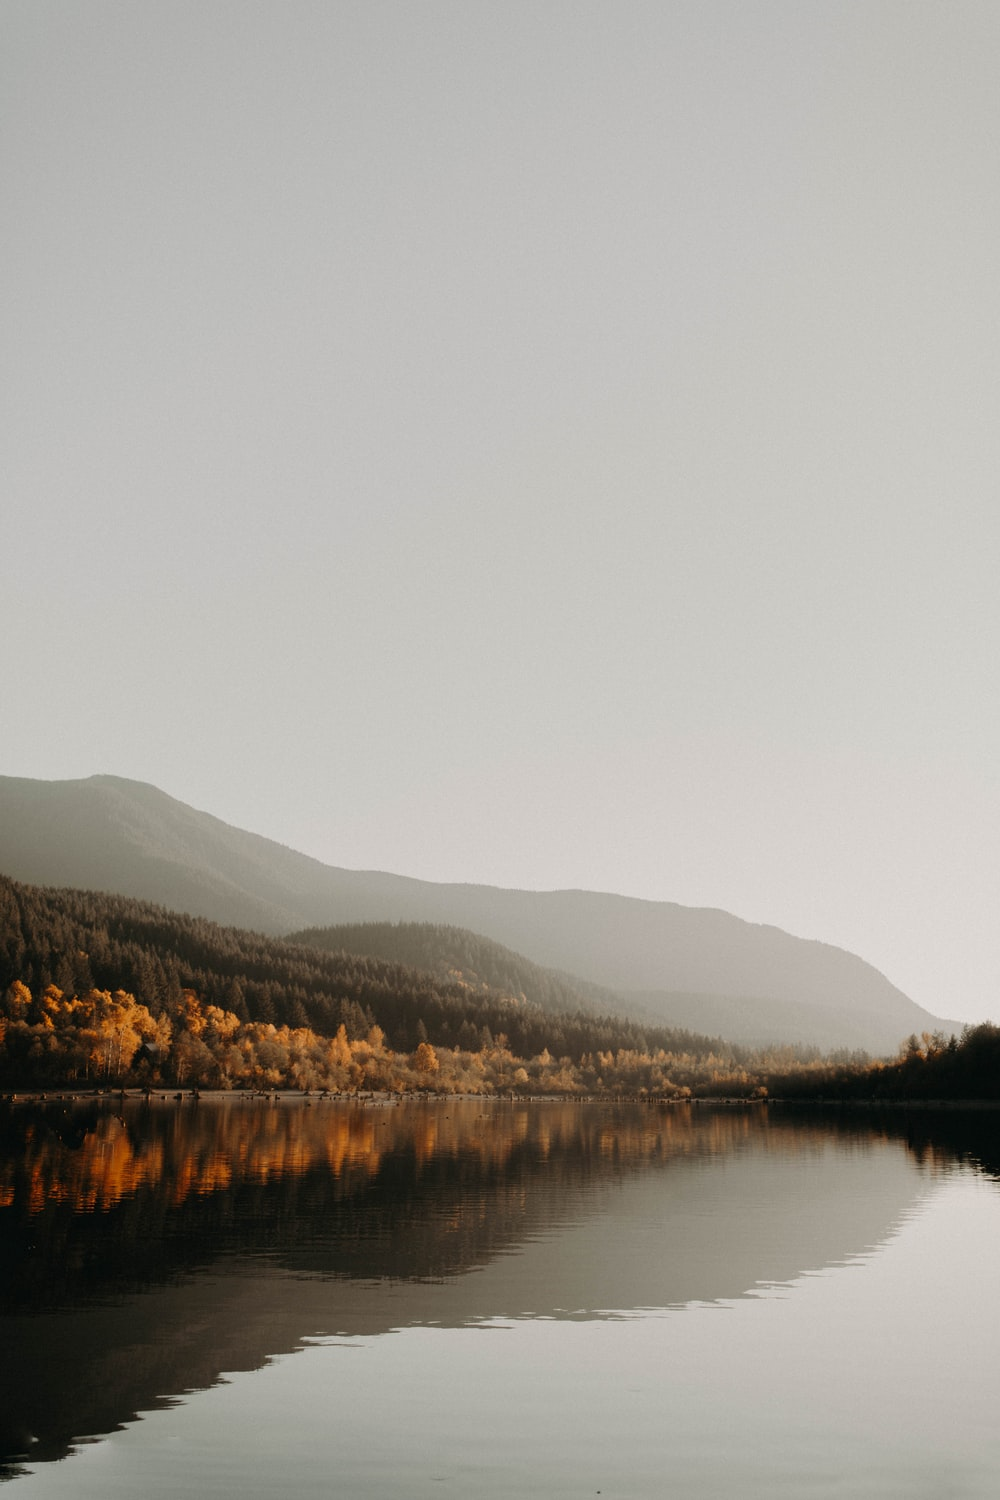 photo of calm body of water near trees